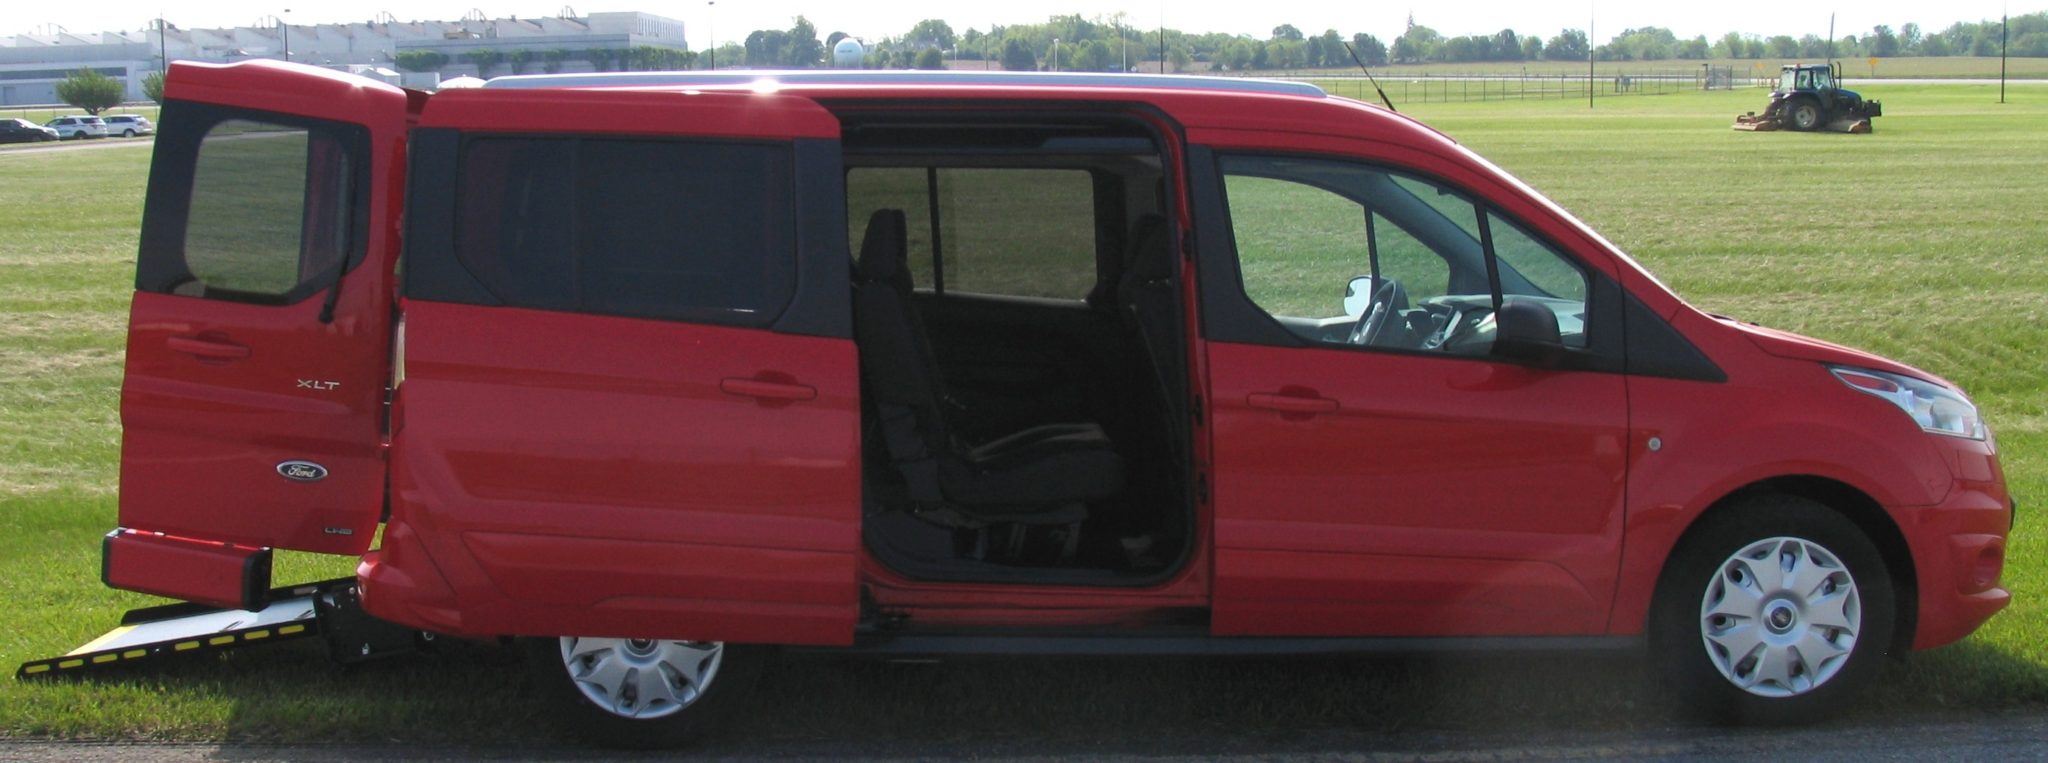 Wheelchair Accessible Vans For Sale Customizers Quality